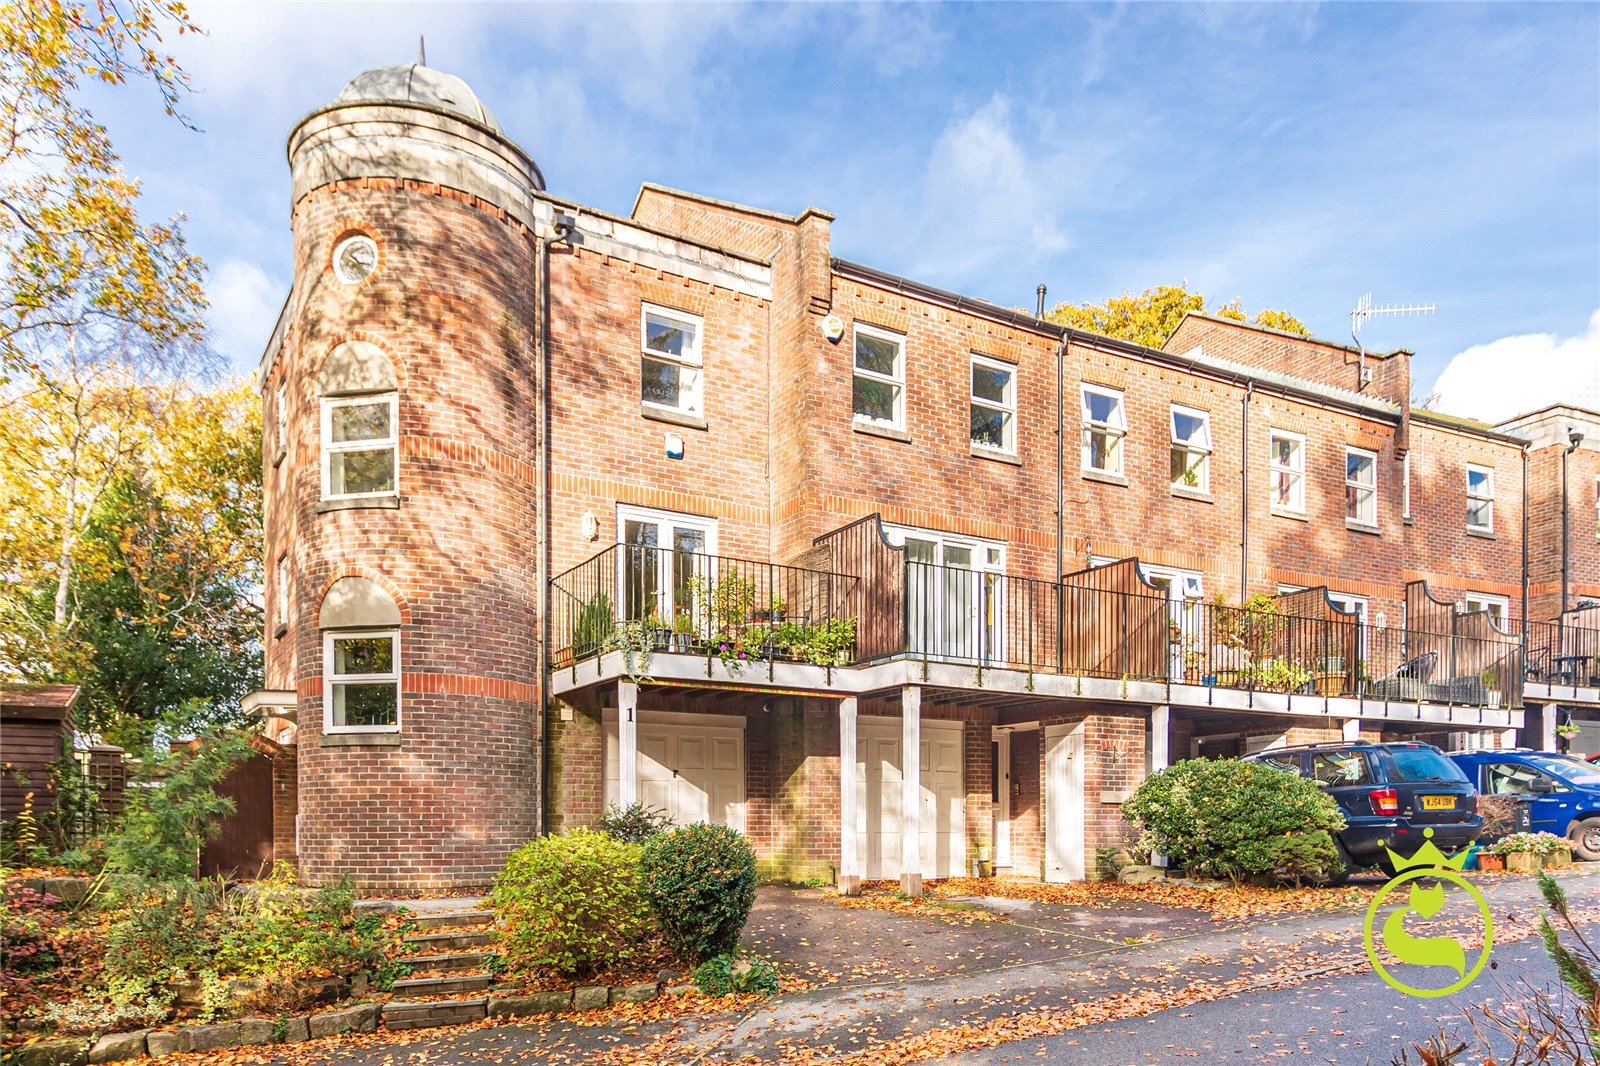 3 bed house to rent in The Topiary, Poole - Property Image 1